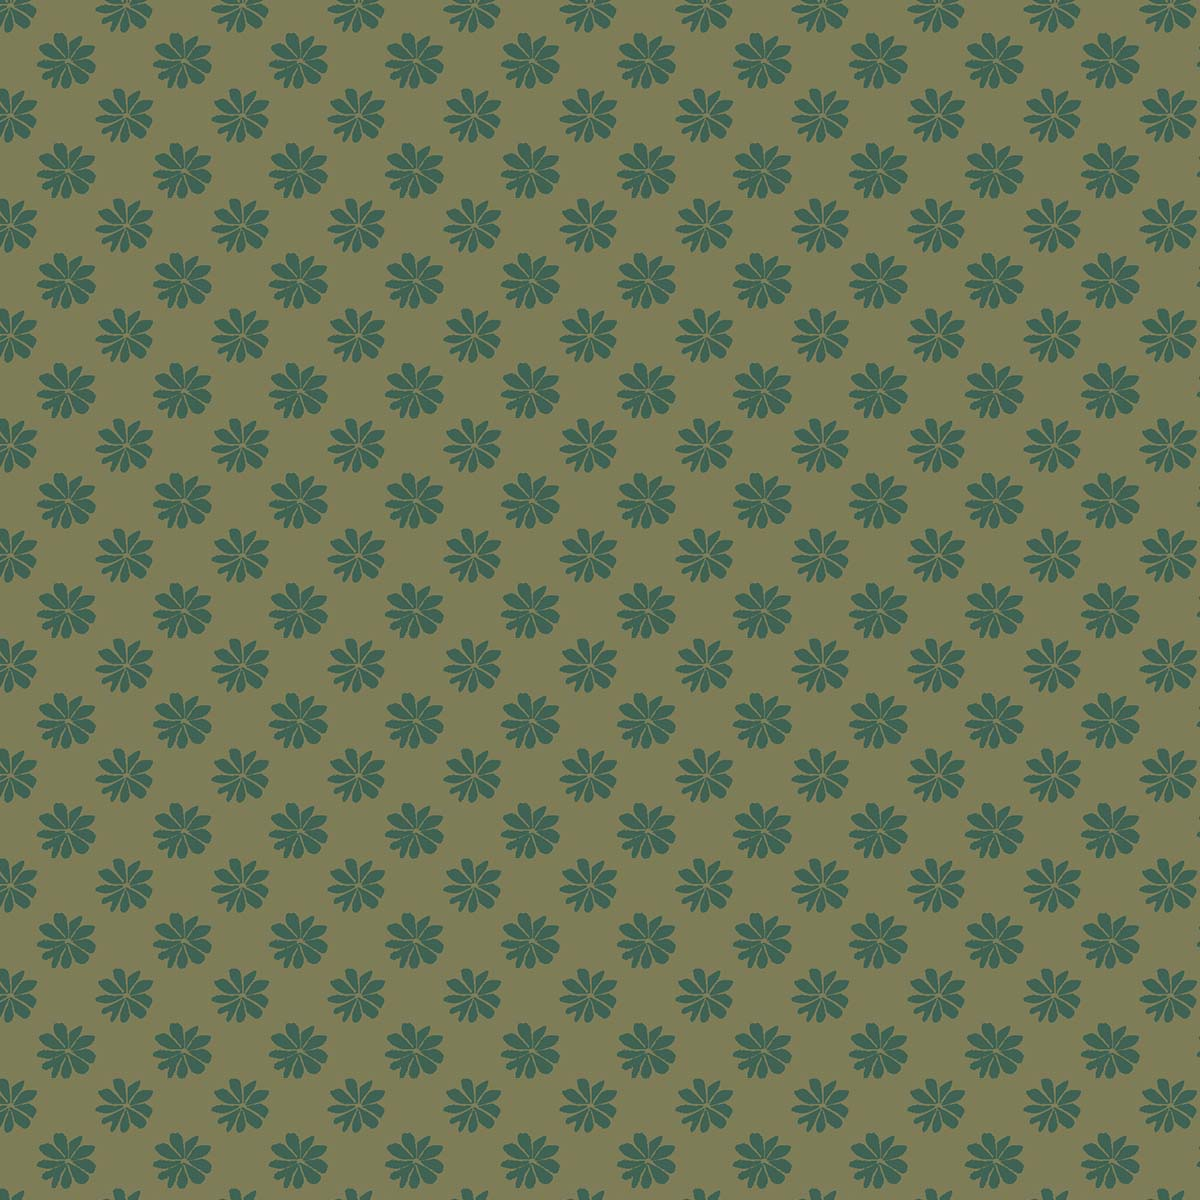 Liberty of London English Garden Floral Dot Green Fabric LF04775603X